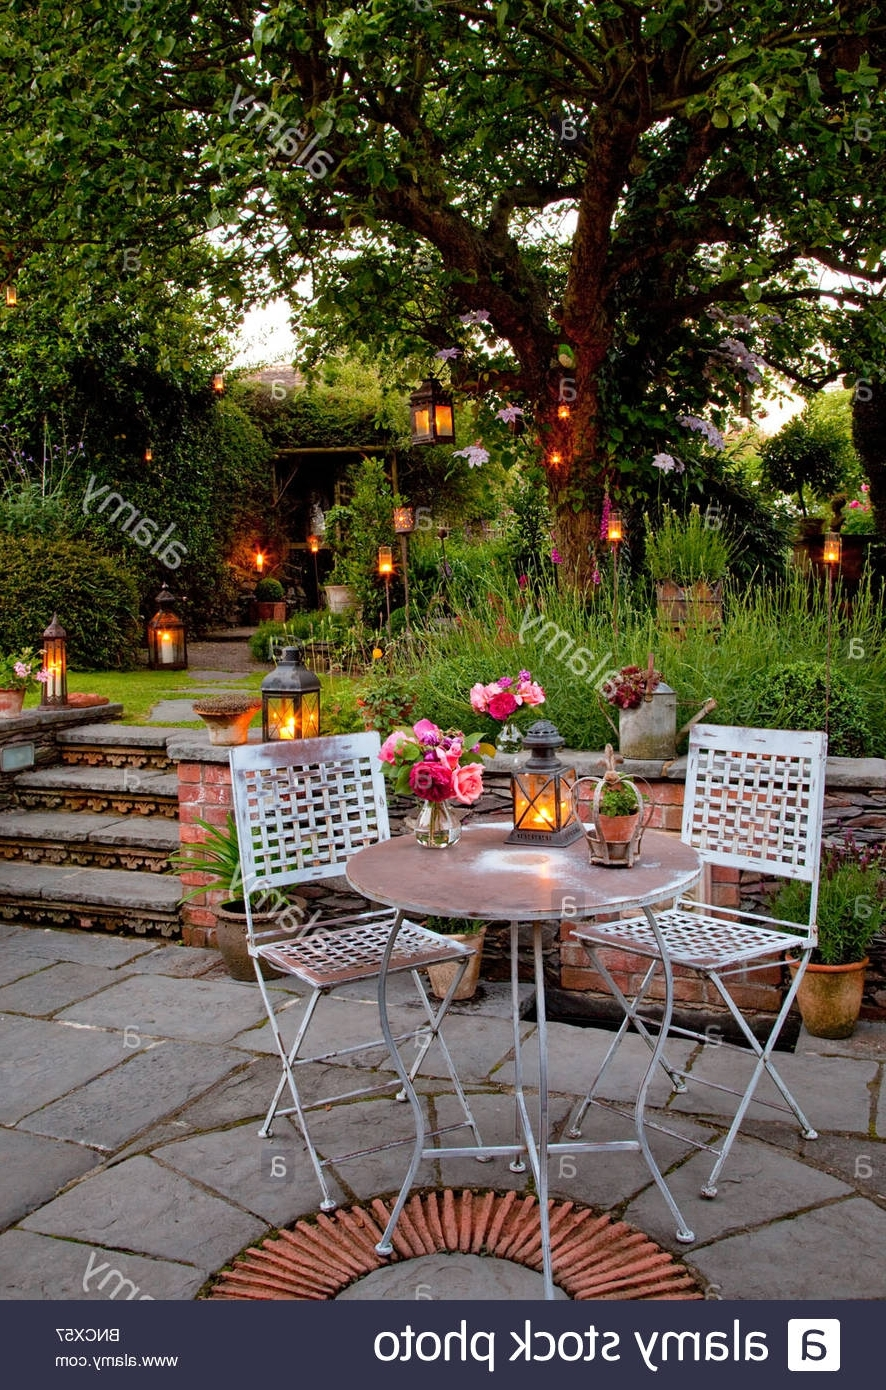 Outdoor Table Lanterns Within Favorite Metal Table And Chairs On Patio With Candles And Lanterns In Garden (View 17 of 20)